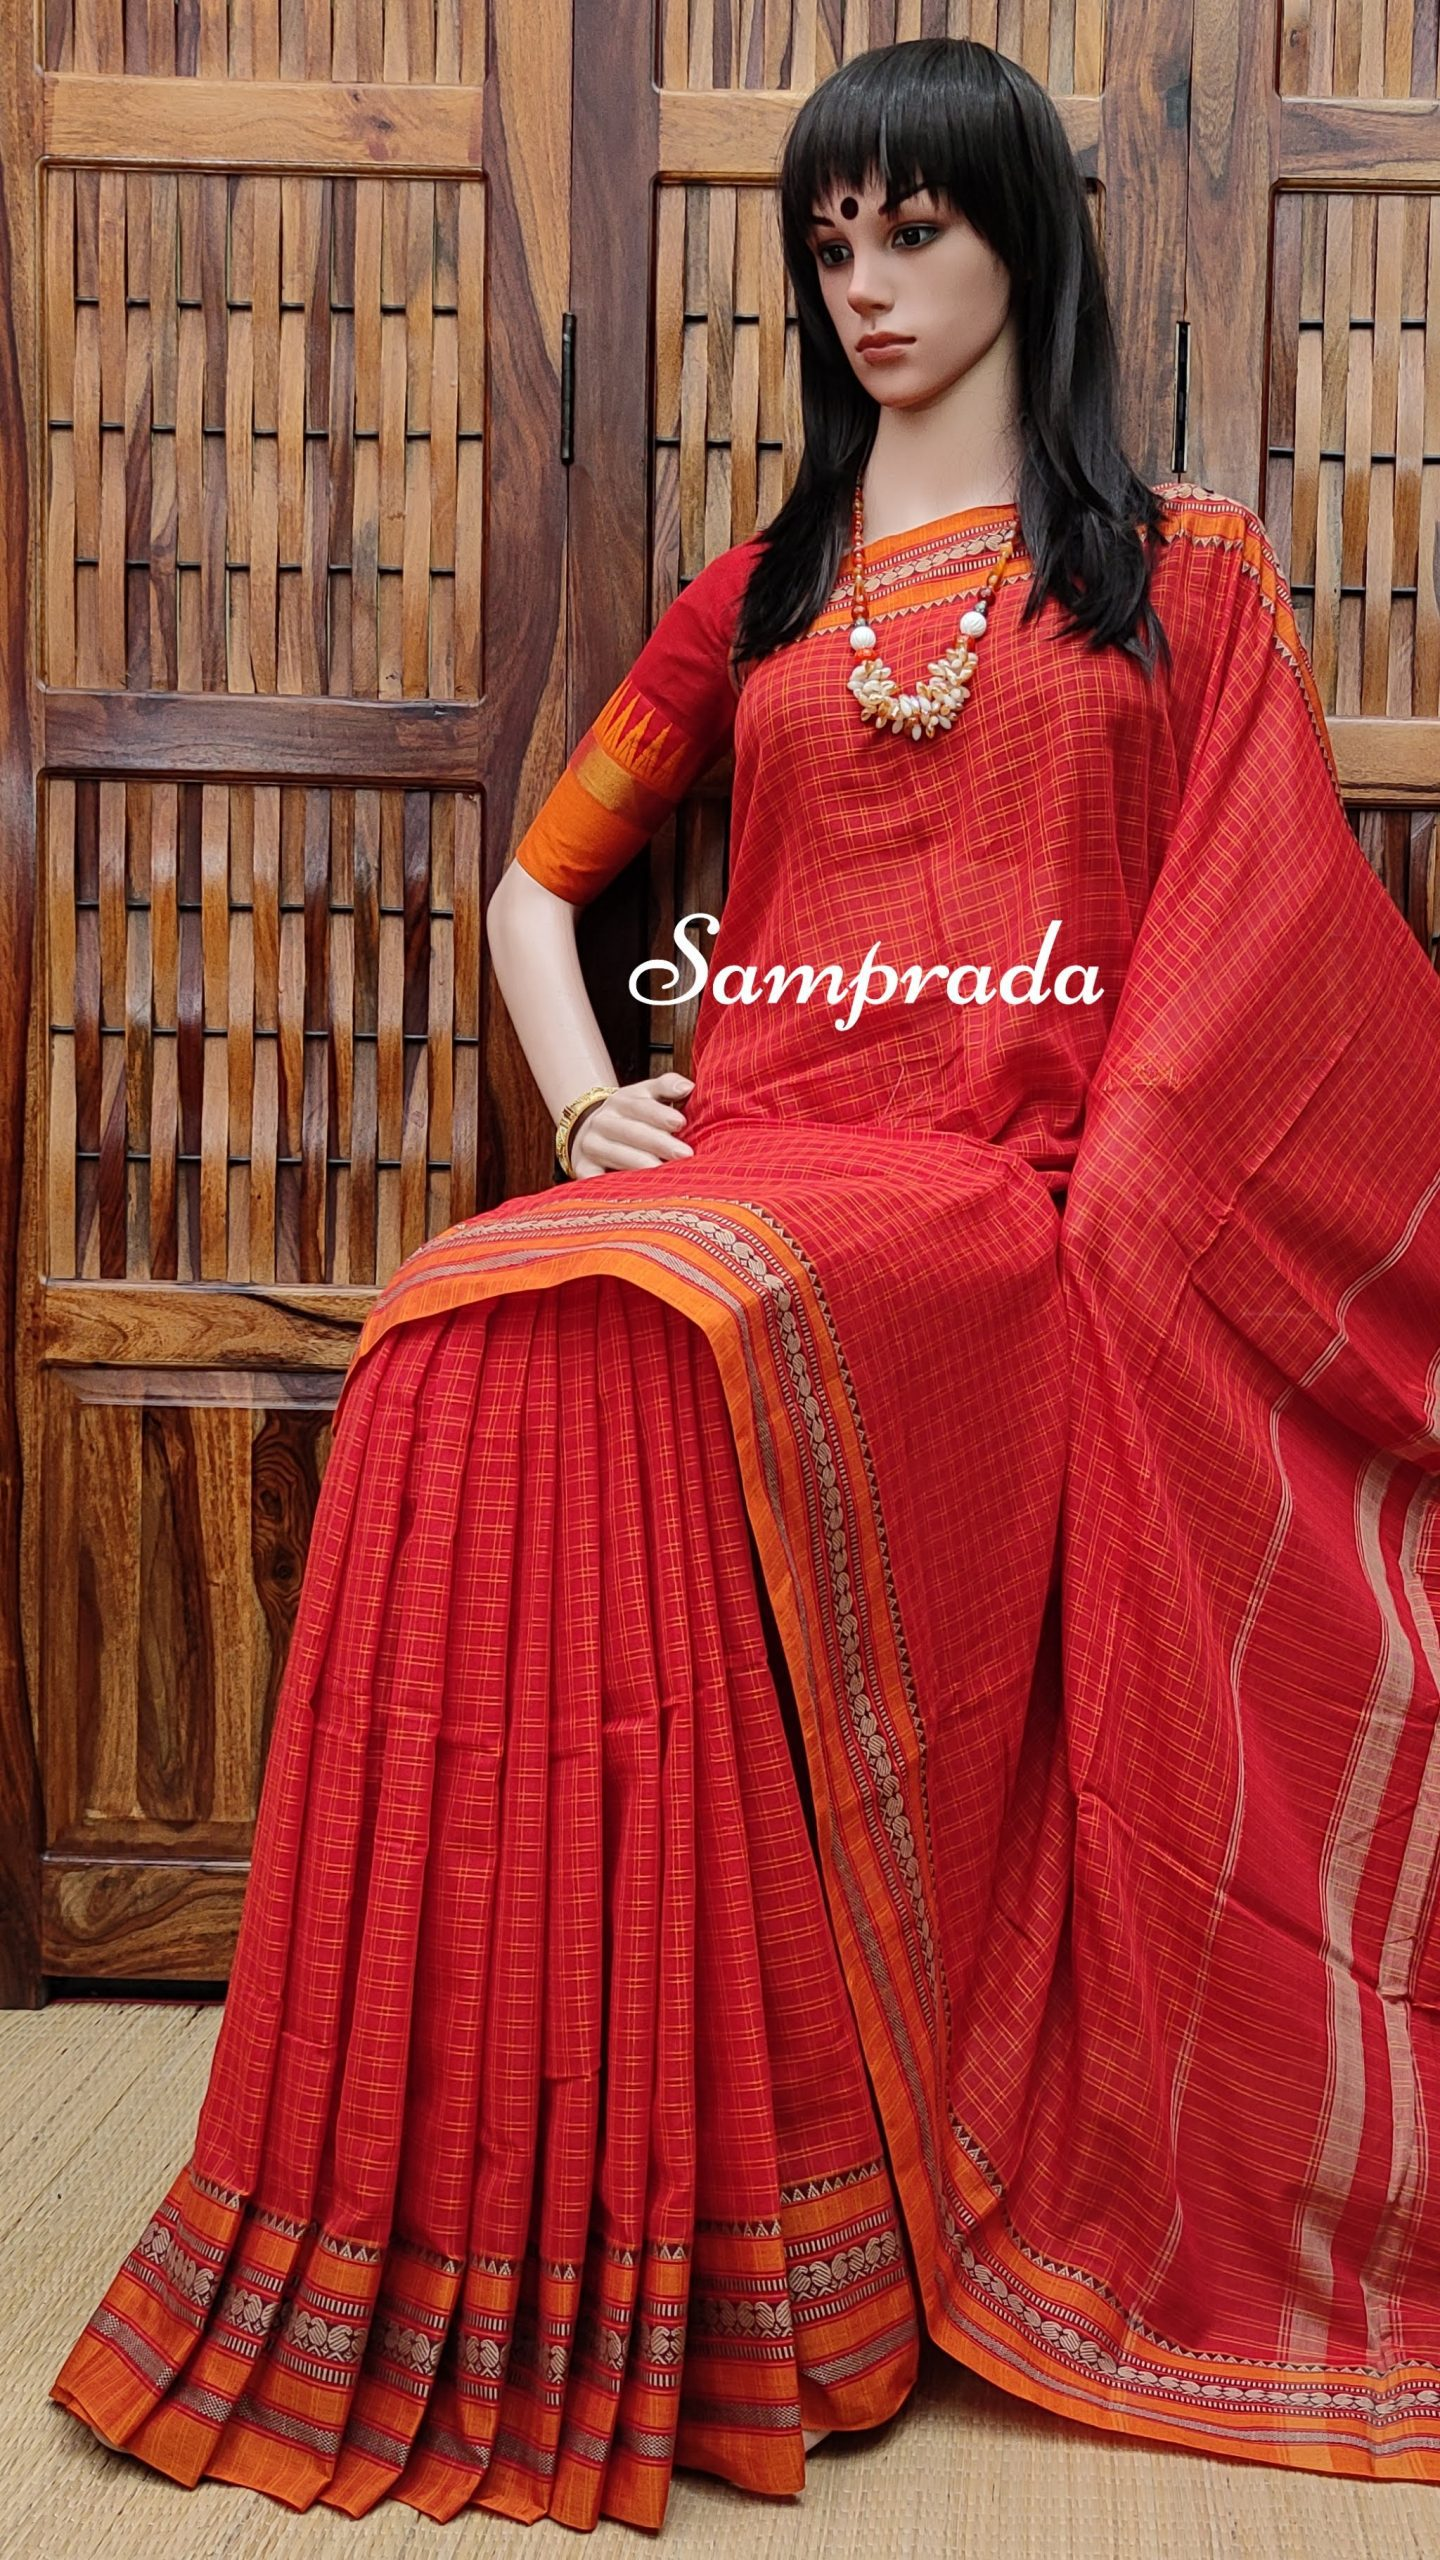 Moyuri - Mercerized Pearl Cotton Saree